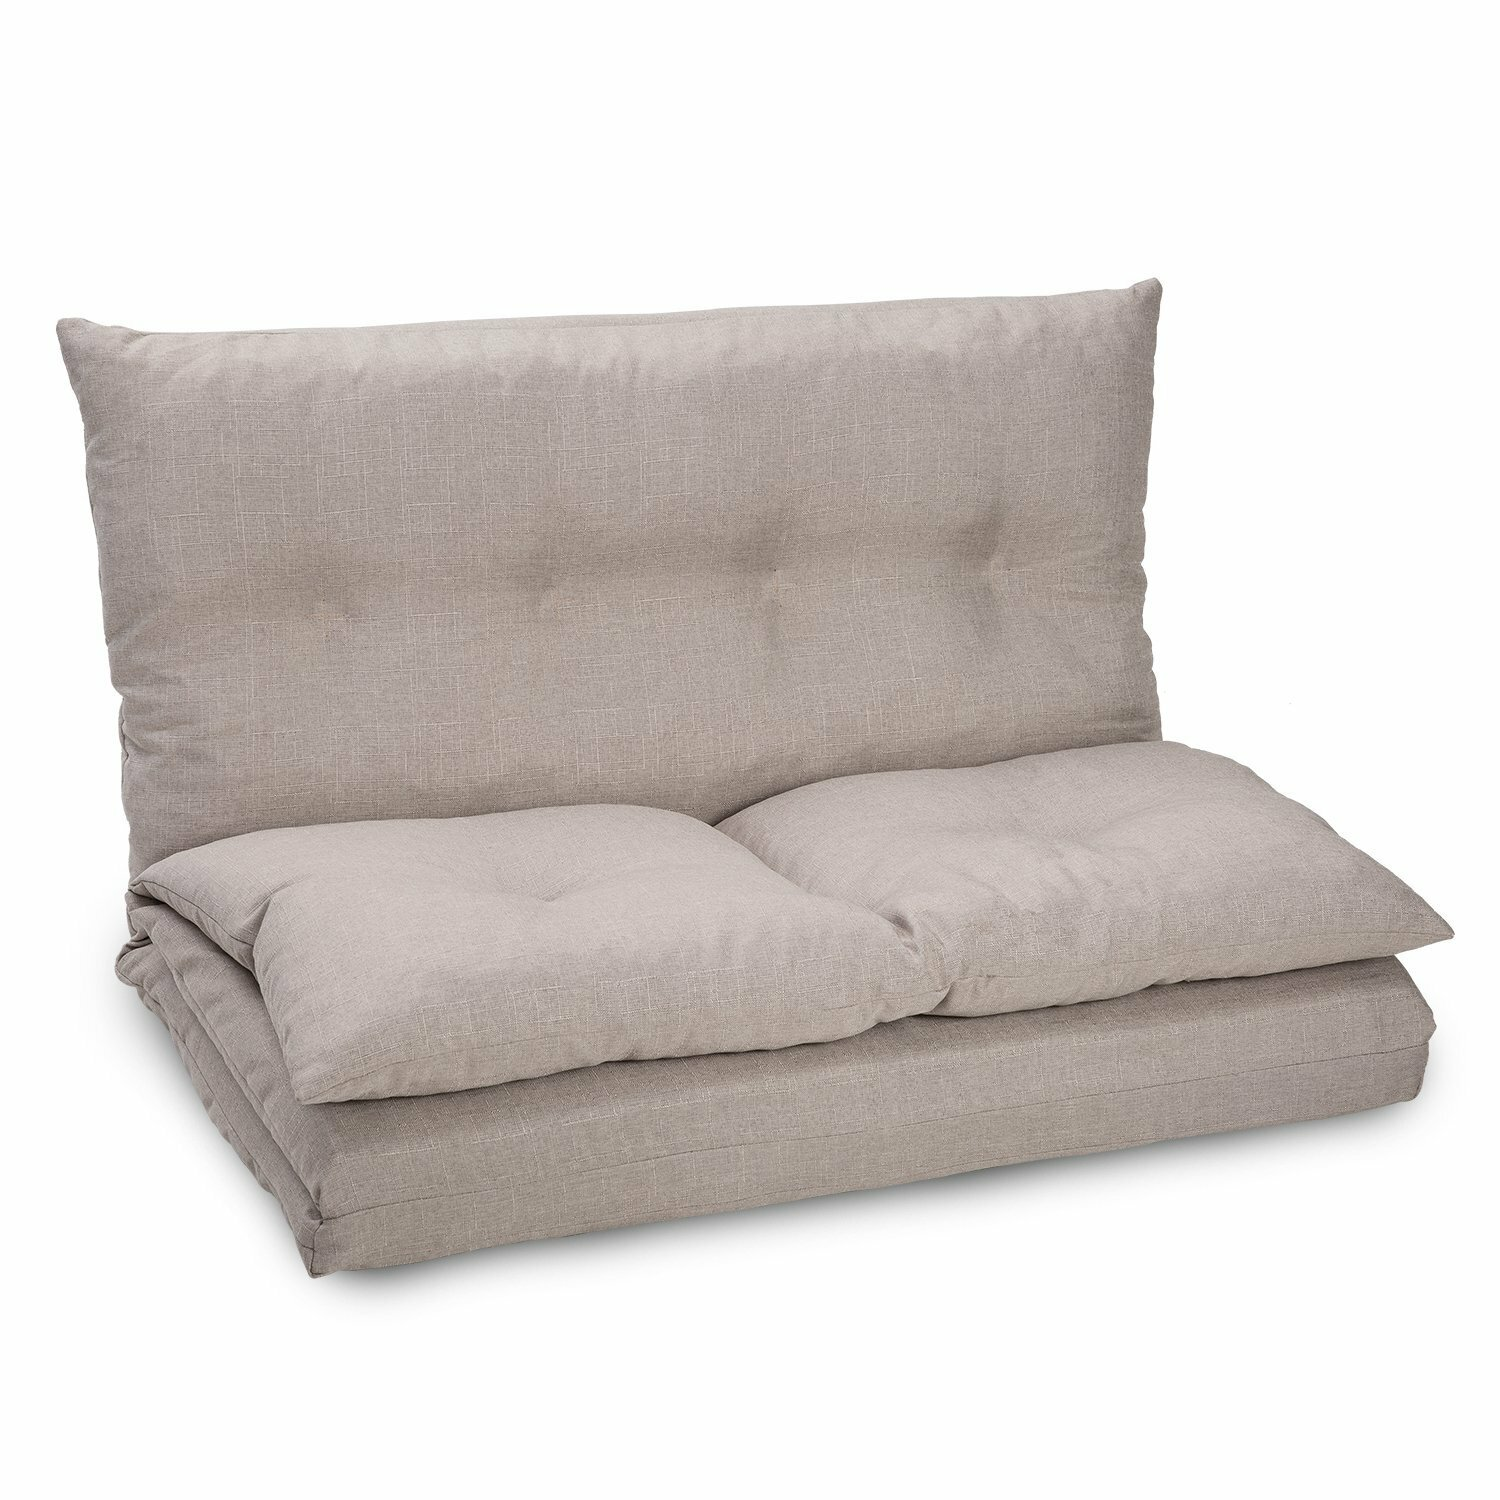 Sofa Cama In English Ezhandui Com # Muebles Laver Fuerteventura